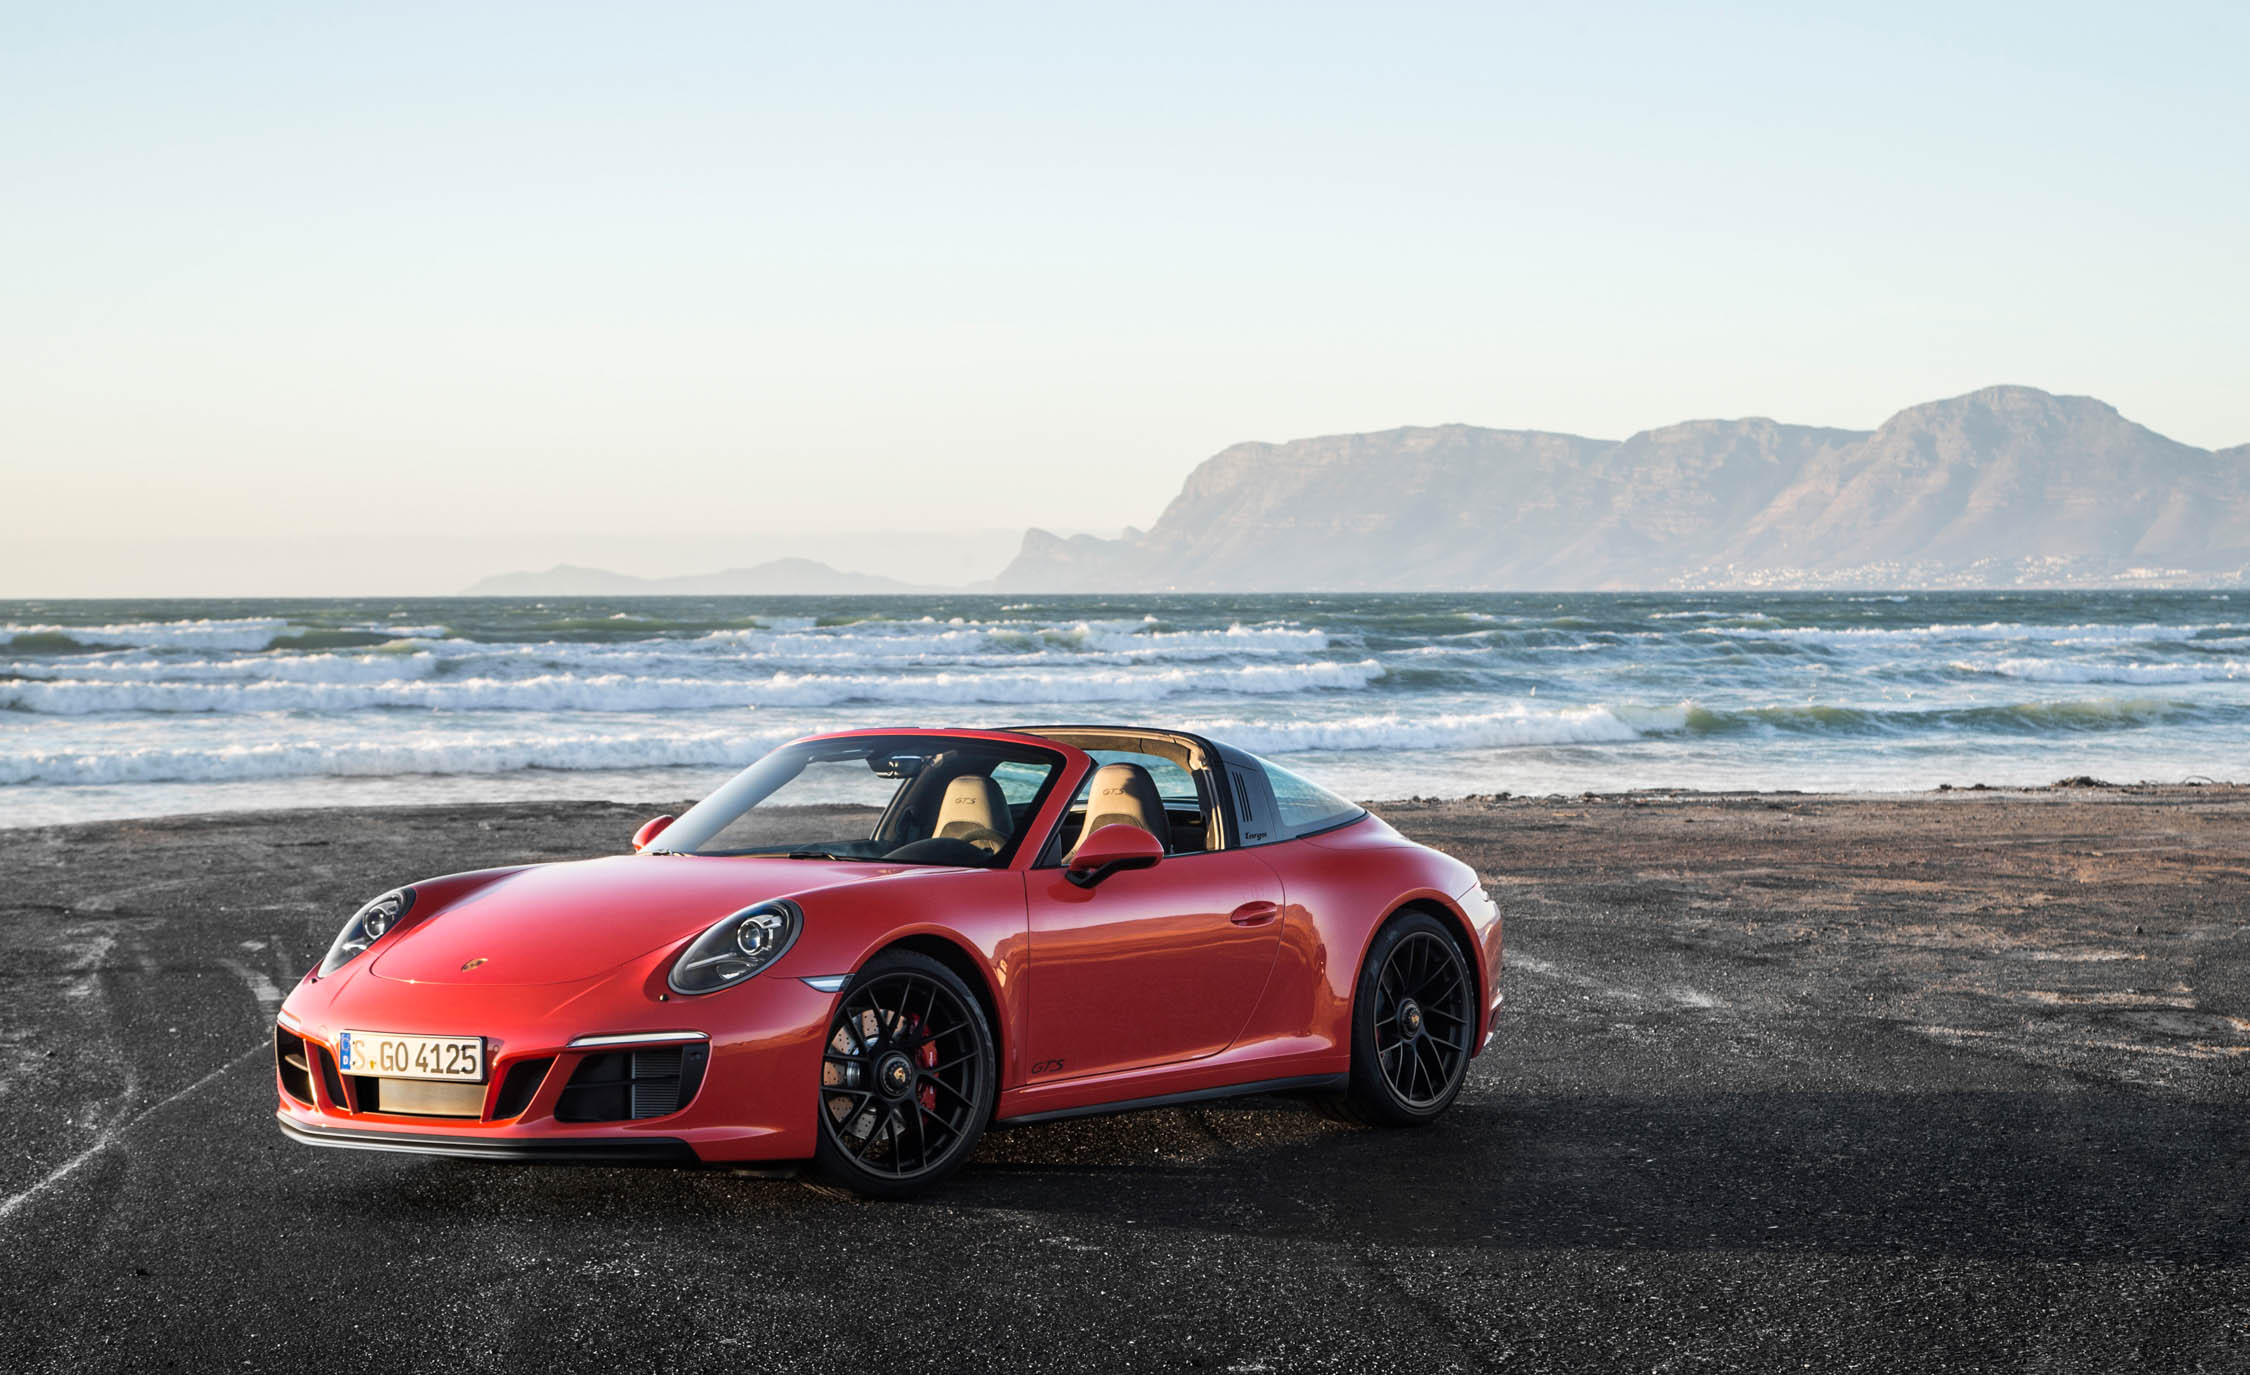 2017 Porsche 911 Targa 4 GTS Exterior Front And Side (Photo 60 of 97)